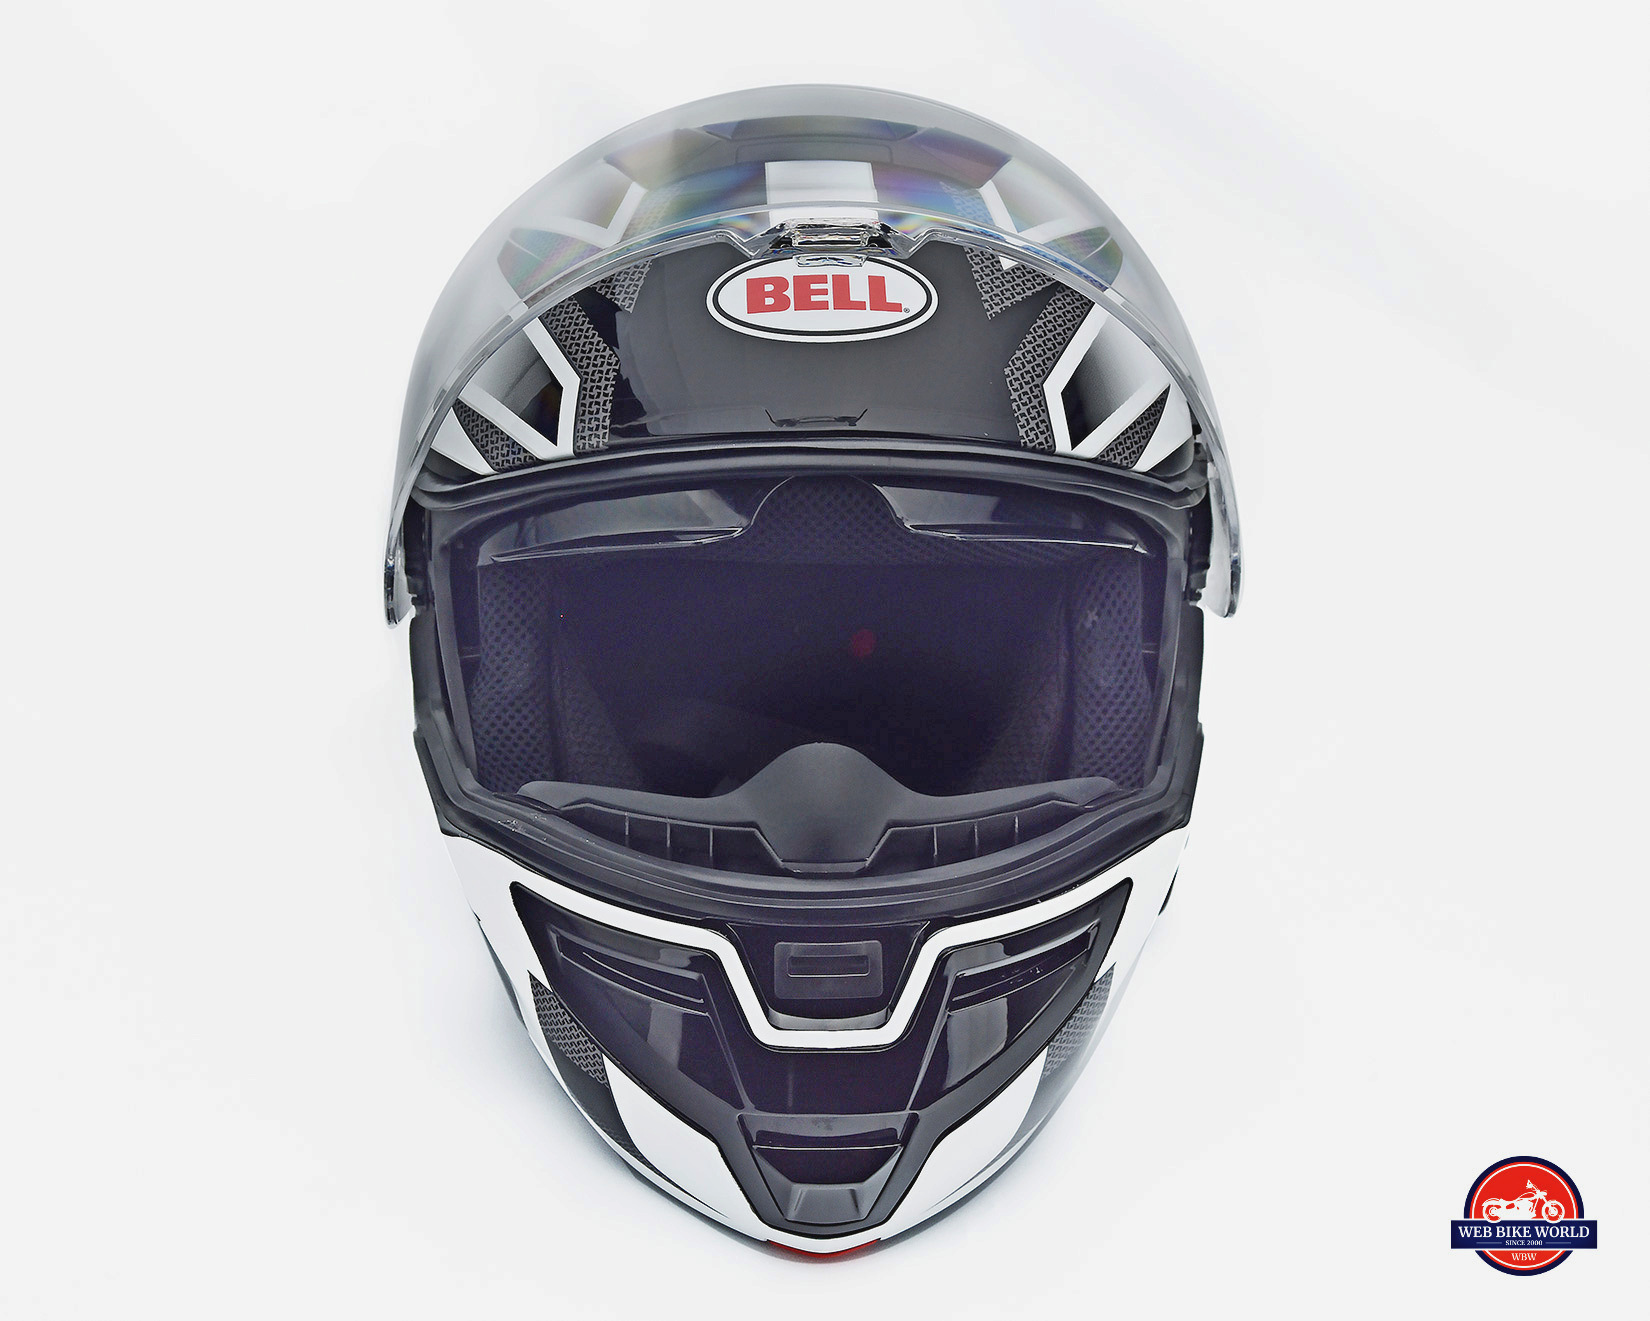 The Bell SRT Modular front view visor open.